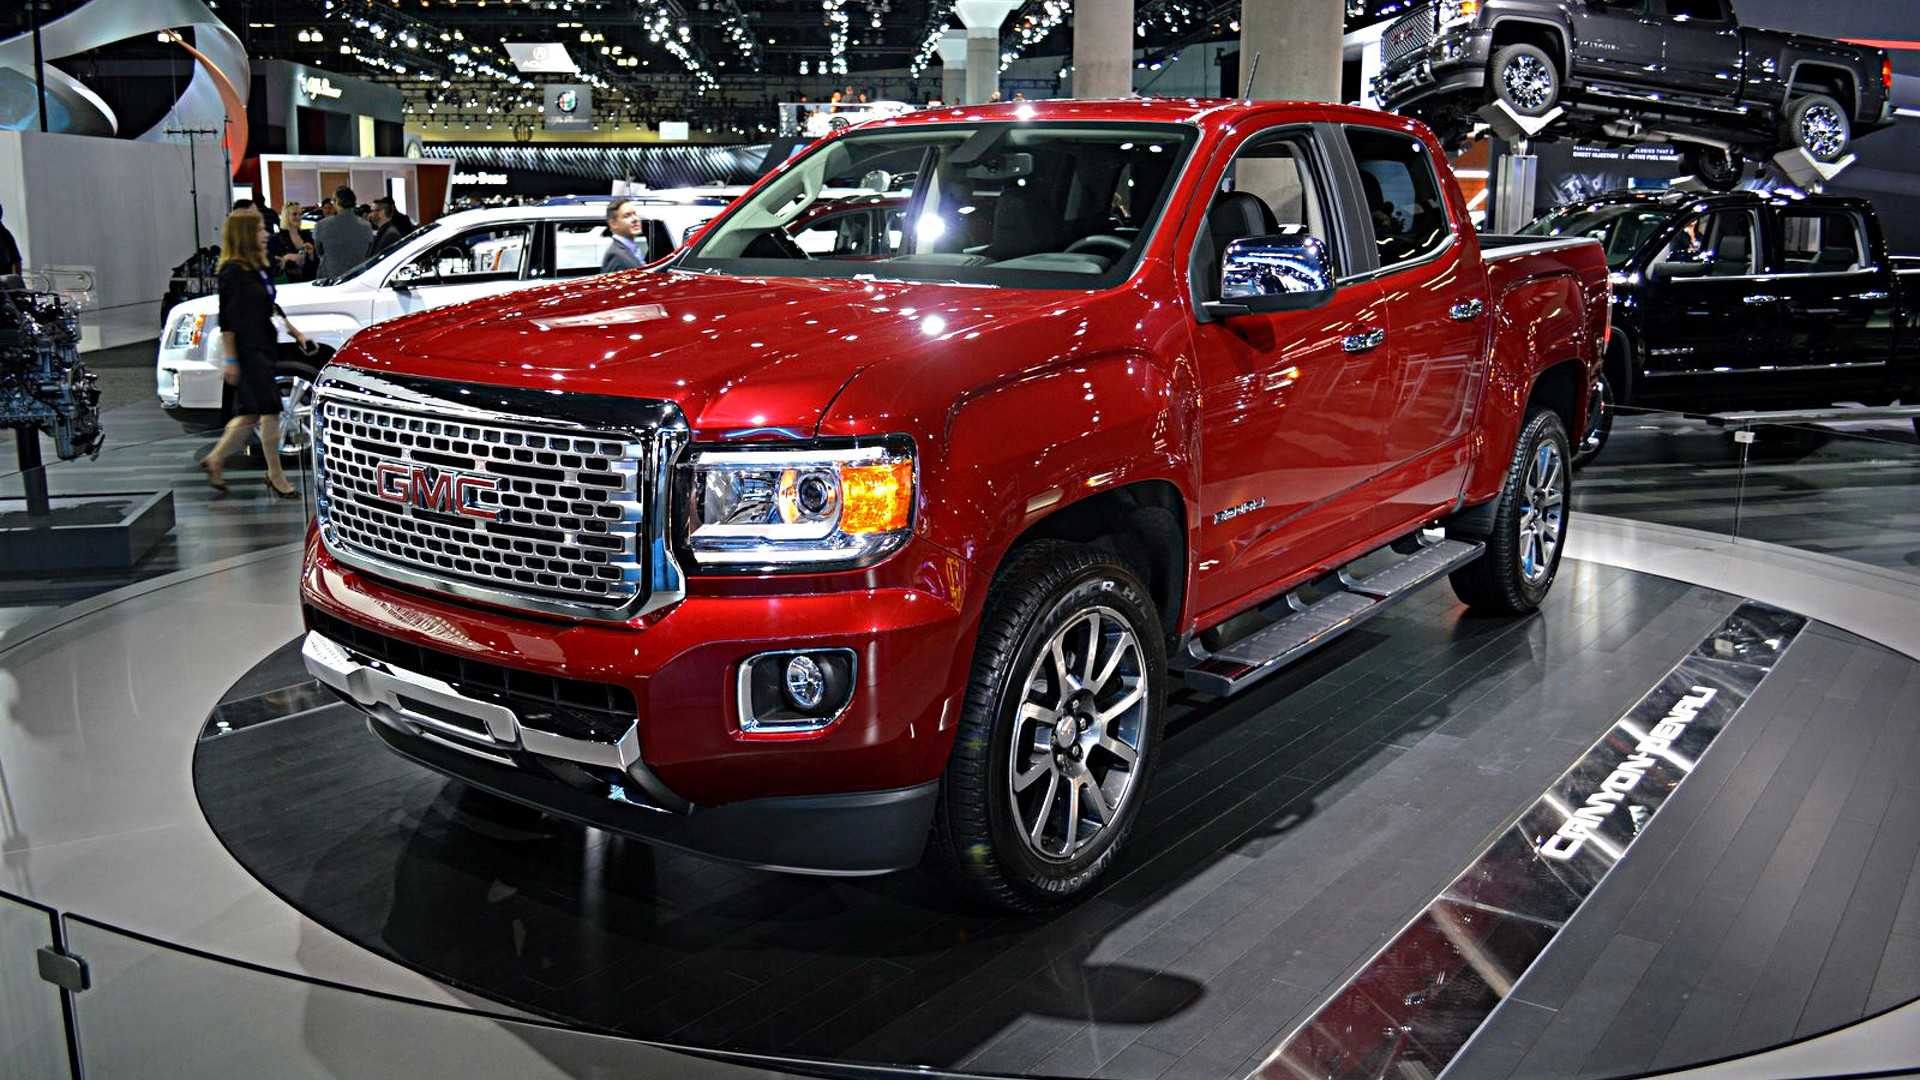 2017 gmc canyon denali unveiled as the first premium mid. Black Bedroom Furniture Sets. Home Design Ideas